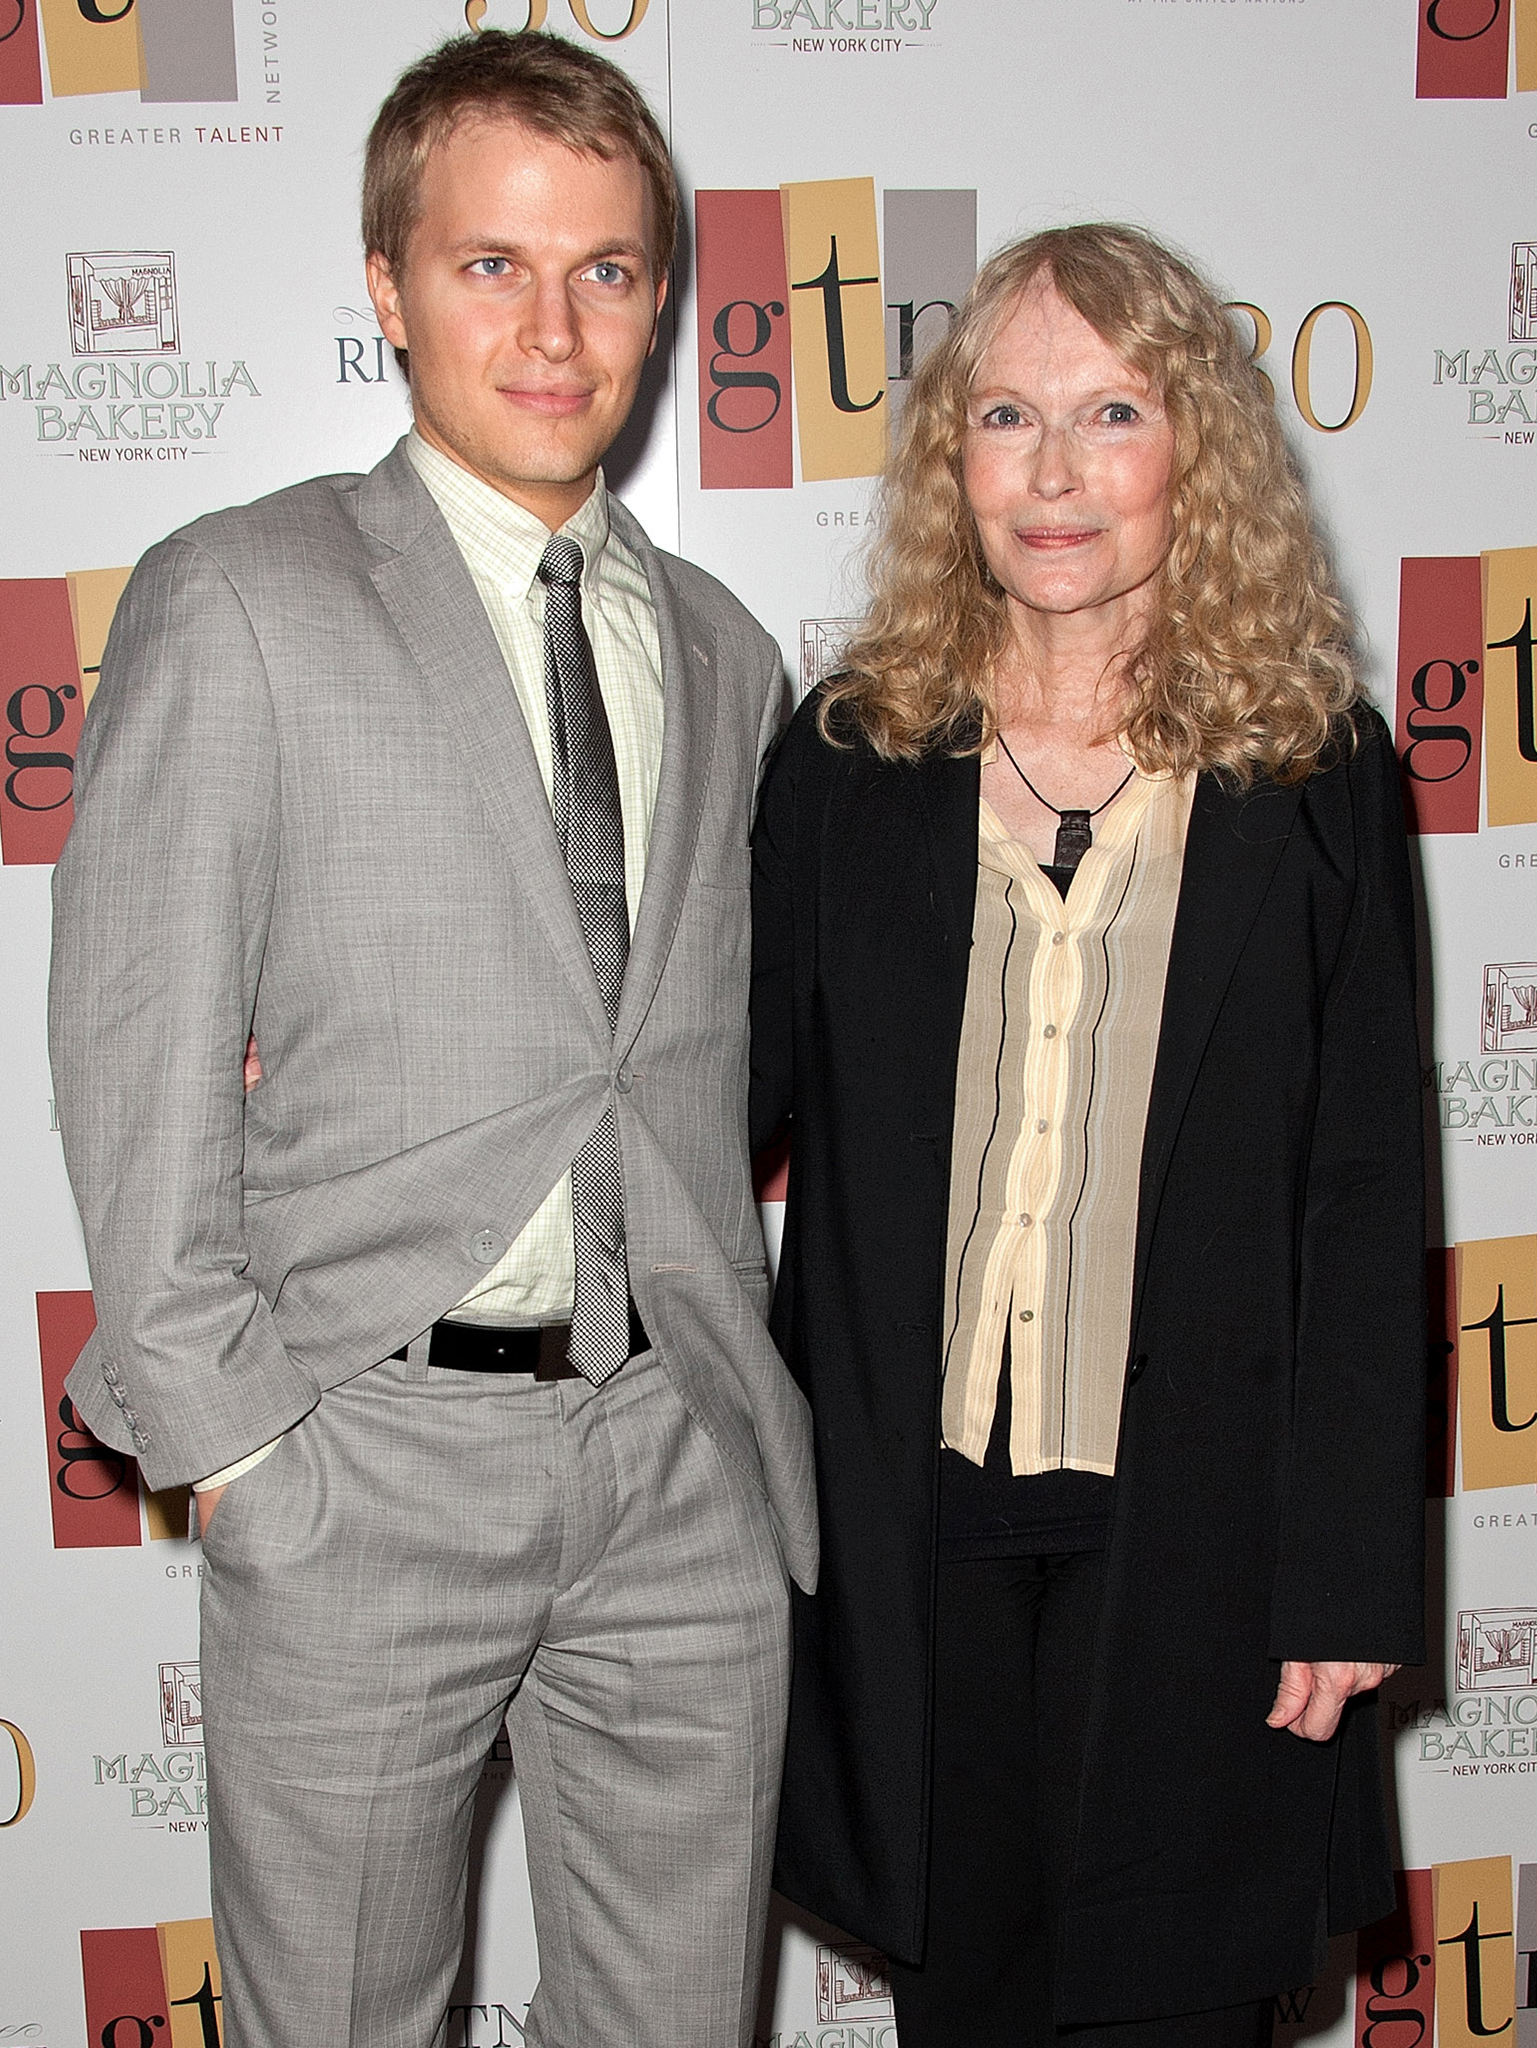 Mia and Ronan Farrow (Getty Images)